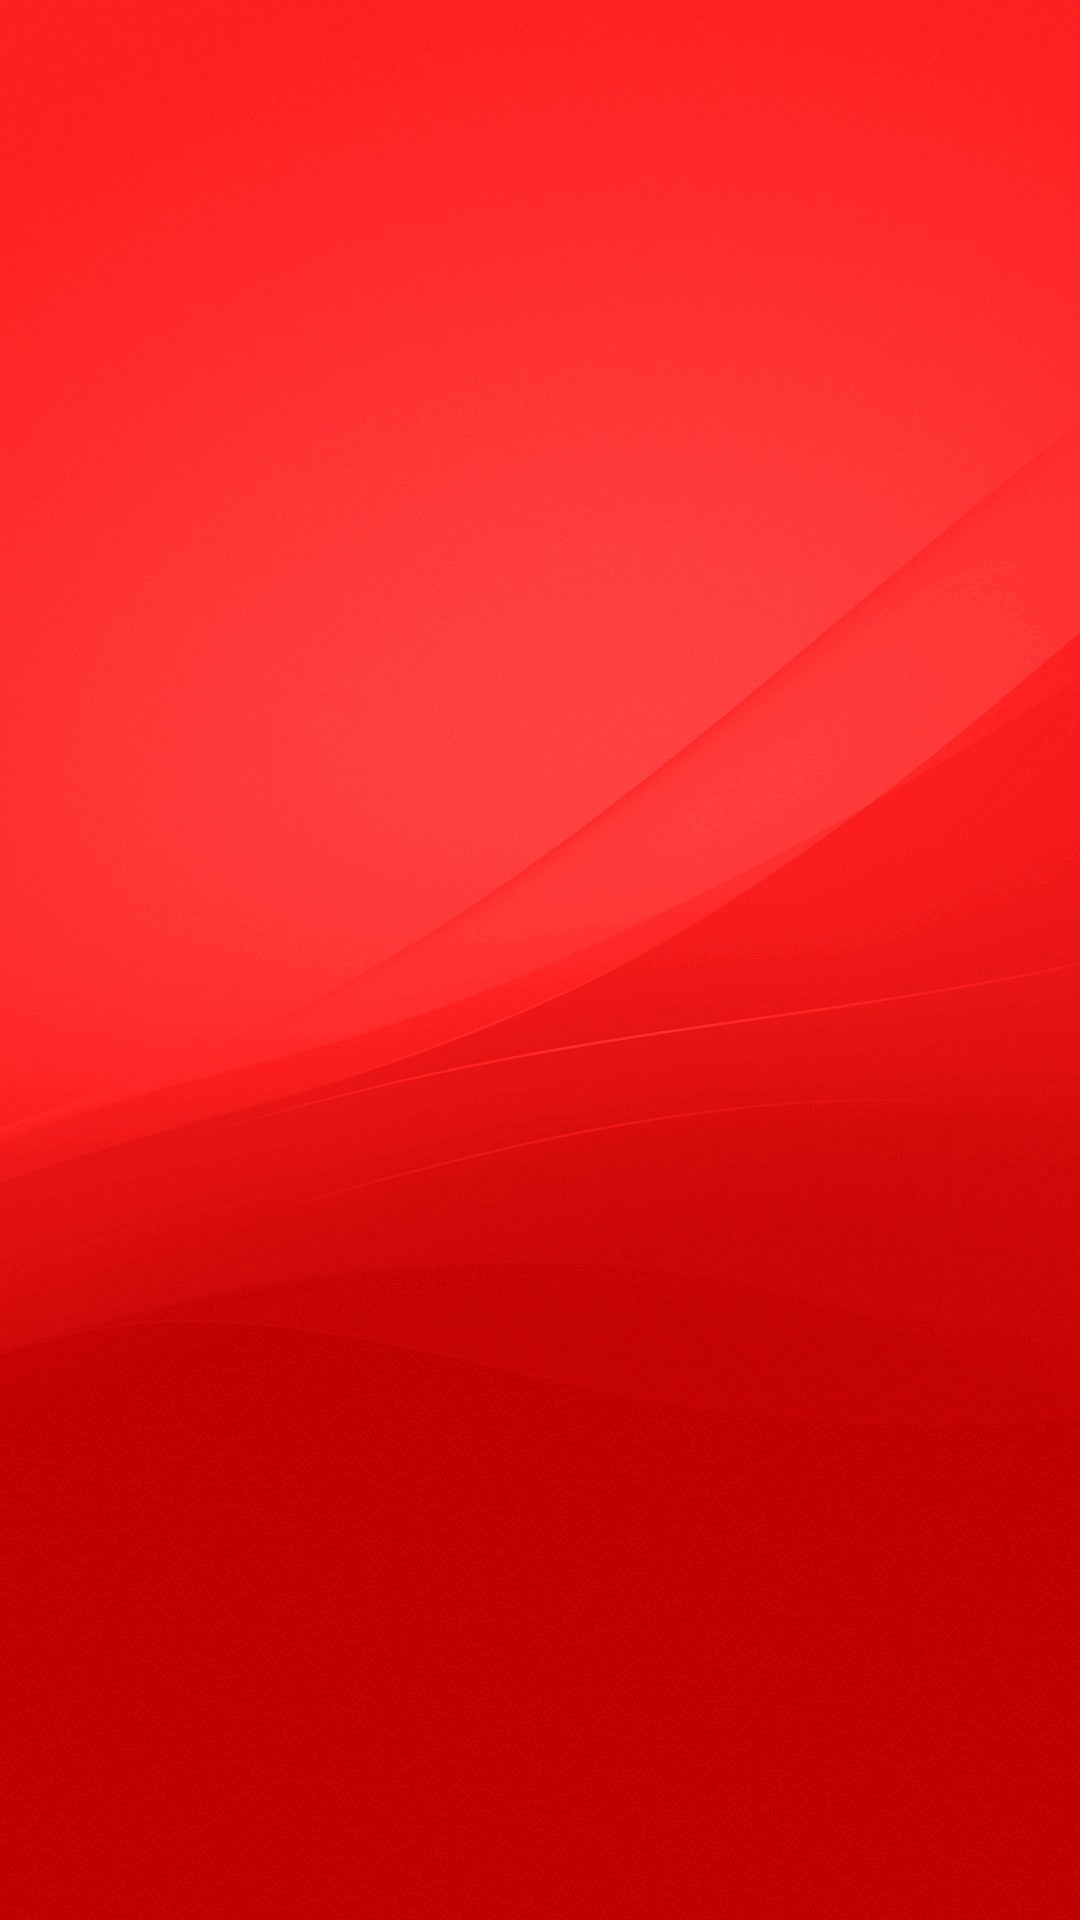 Red Wallpaper Hd 183 ① Download Free Backgrounds For Desktop